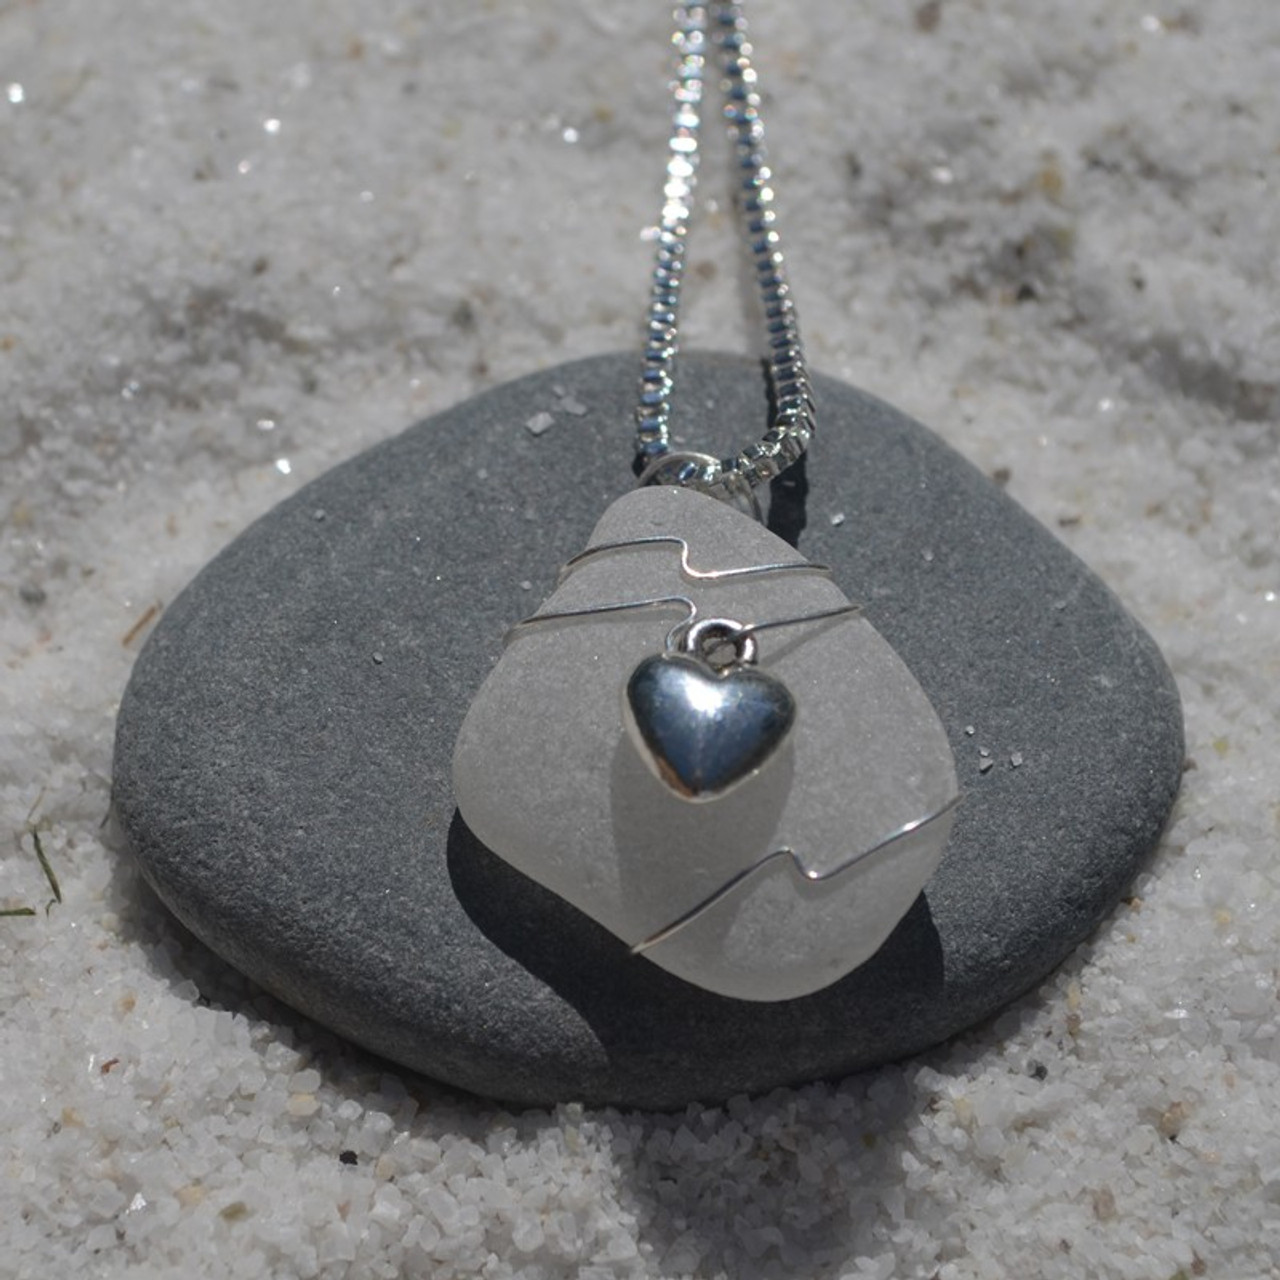 3D Heart Necklace on Sea Glass